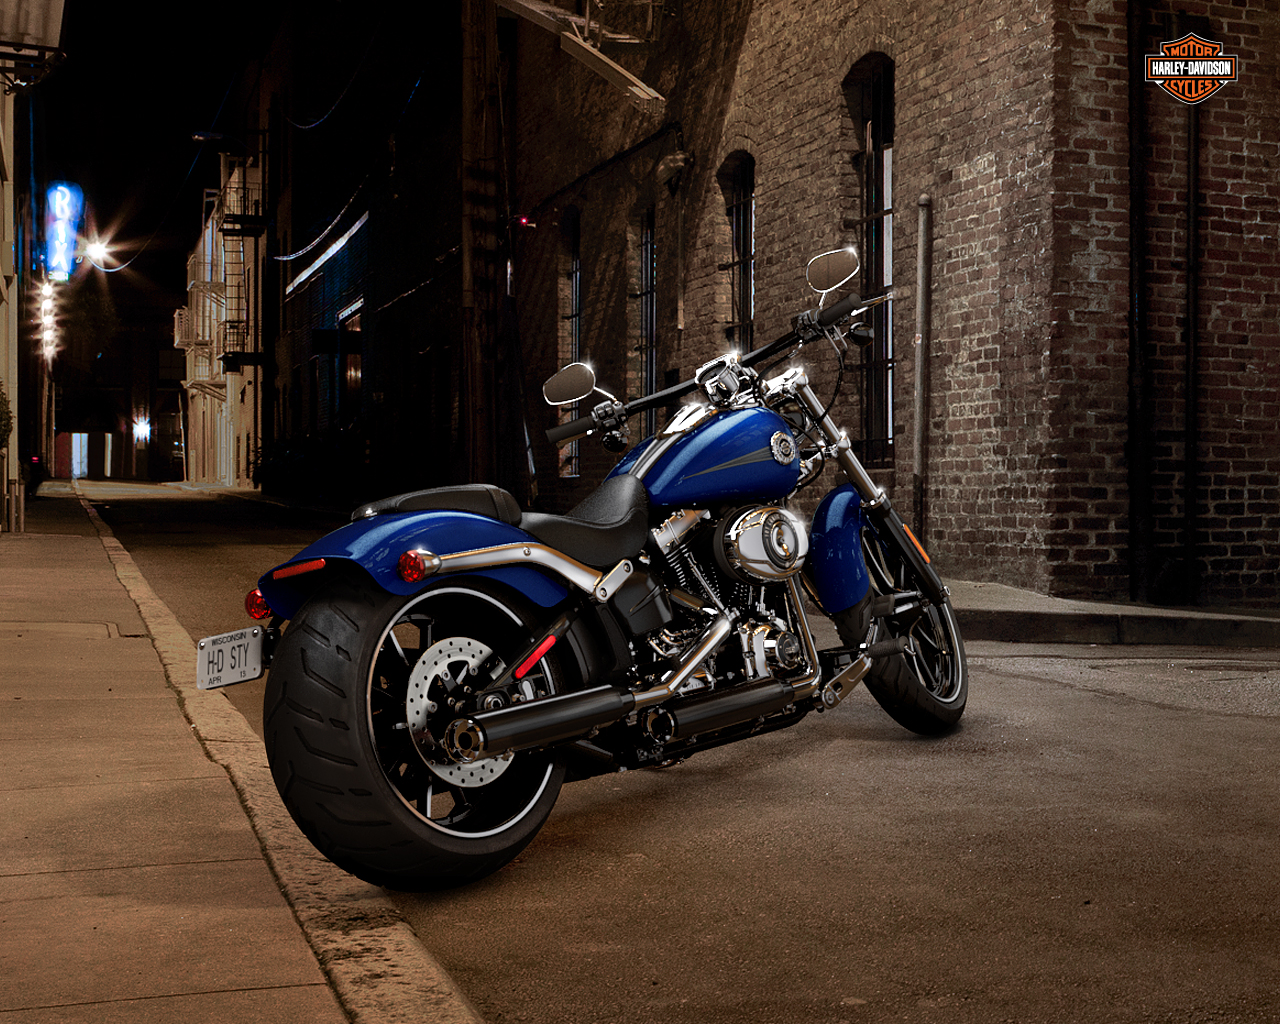 Harley Davidson HD WallpapersHigh Quality   All HD 1280x1024